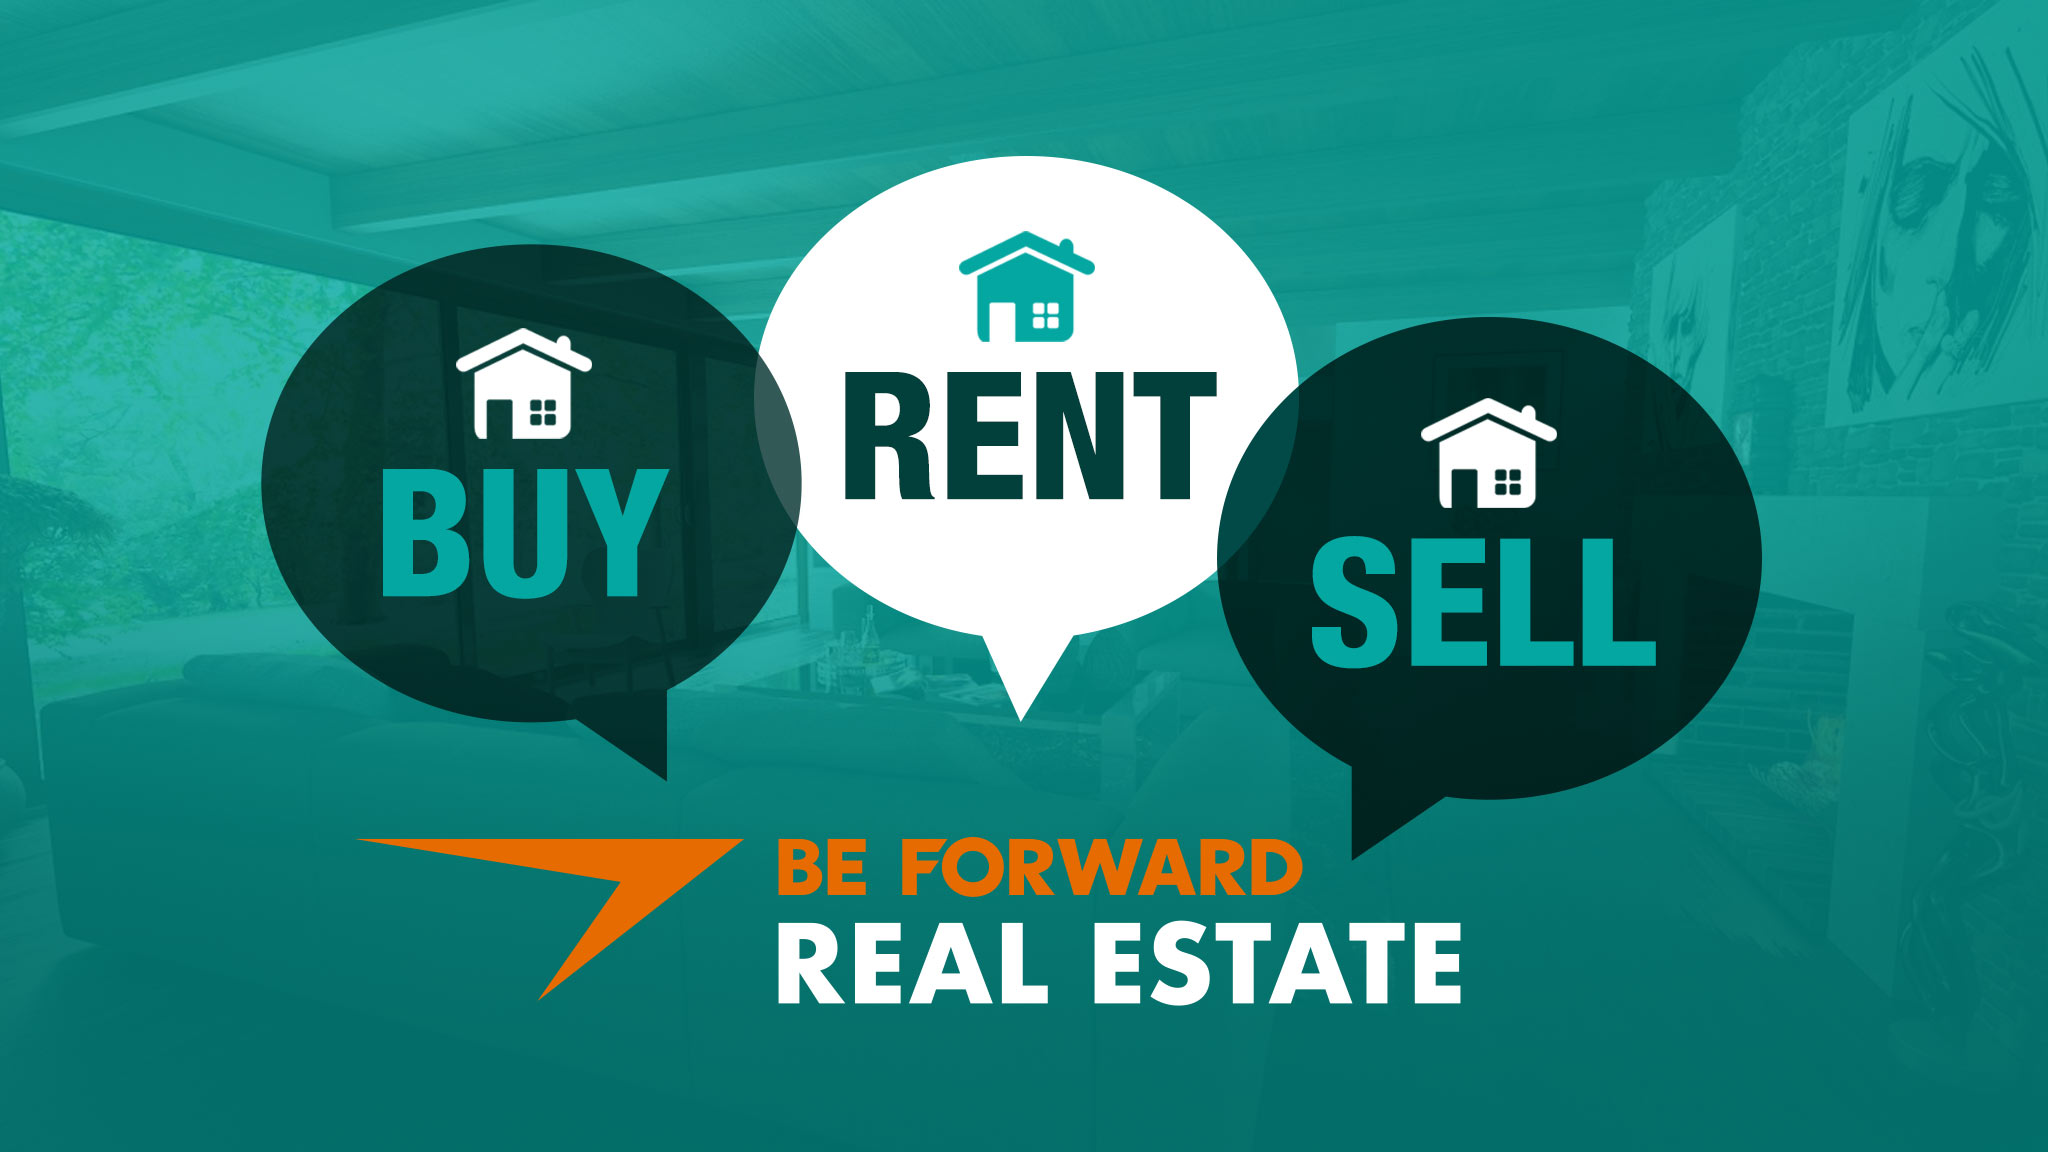 Buy, Rent & Sell With Be Forward Real Estate